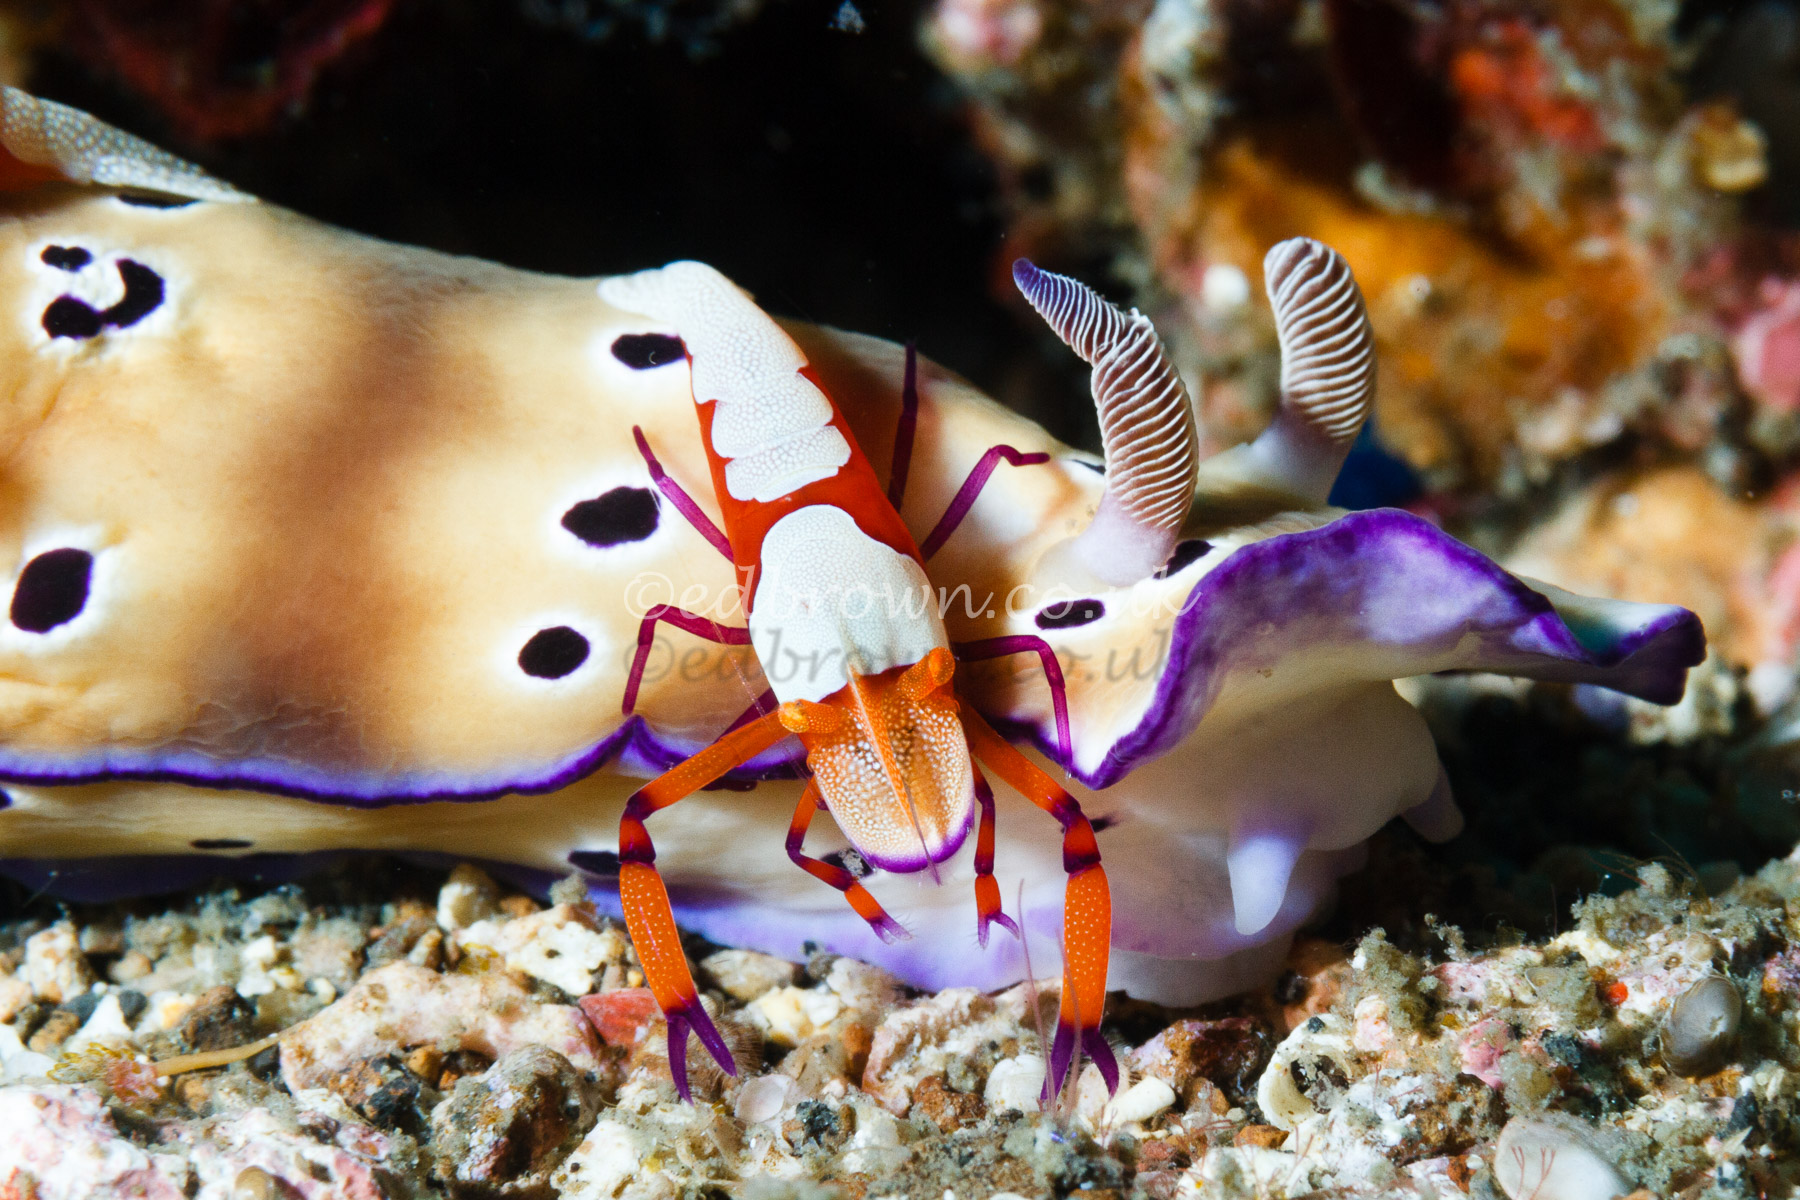 Emperor shrimp (Zenopontonia rex/ Periclimenes imperator) on Hypselodoris tryoni nudibranch